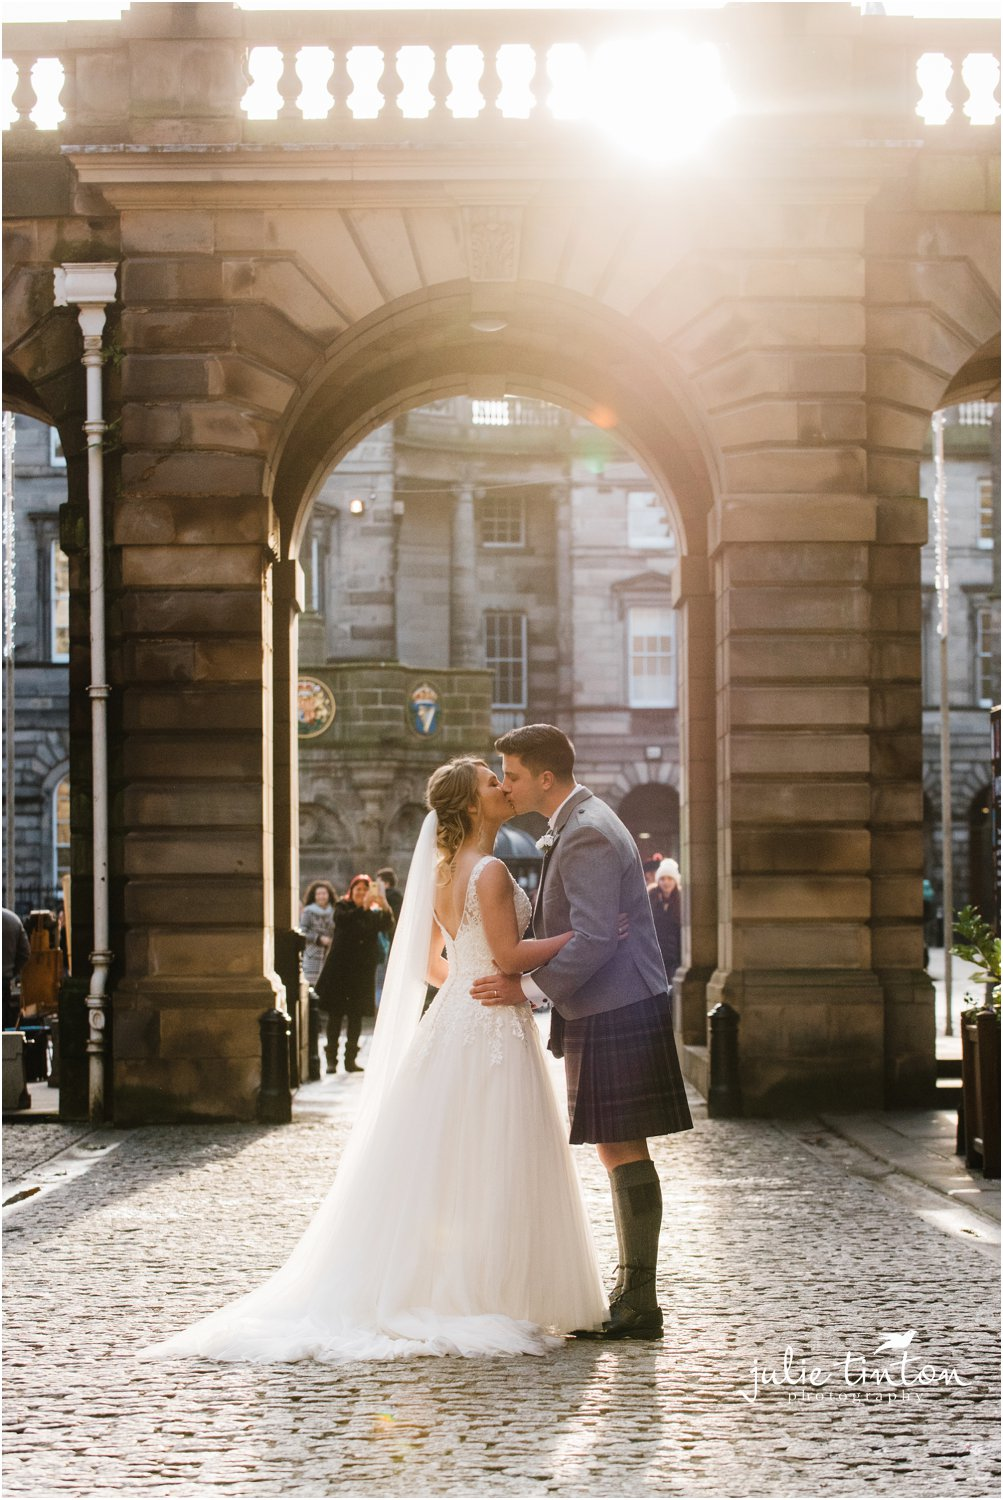 City Chambers Edinburgh Wedding kiss